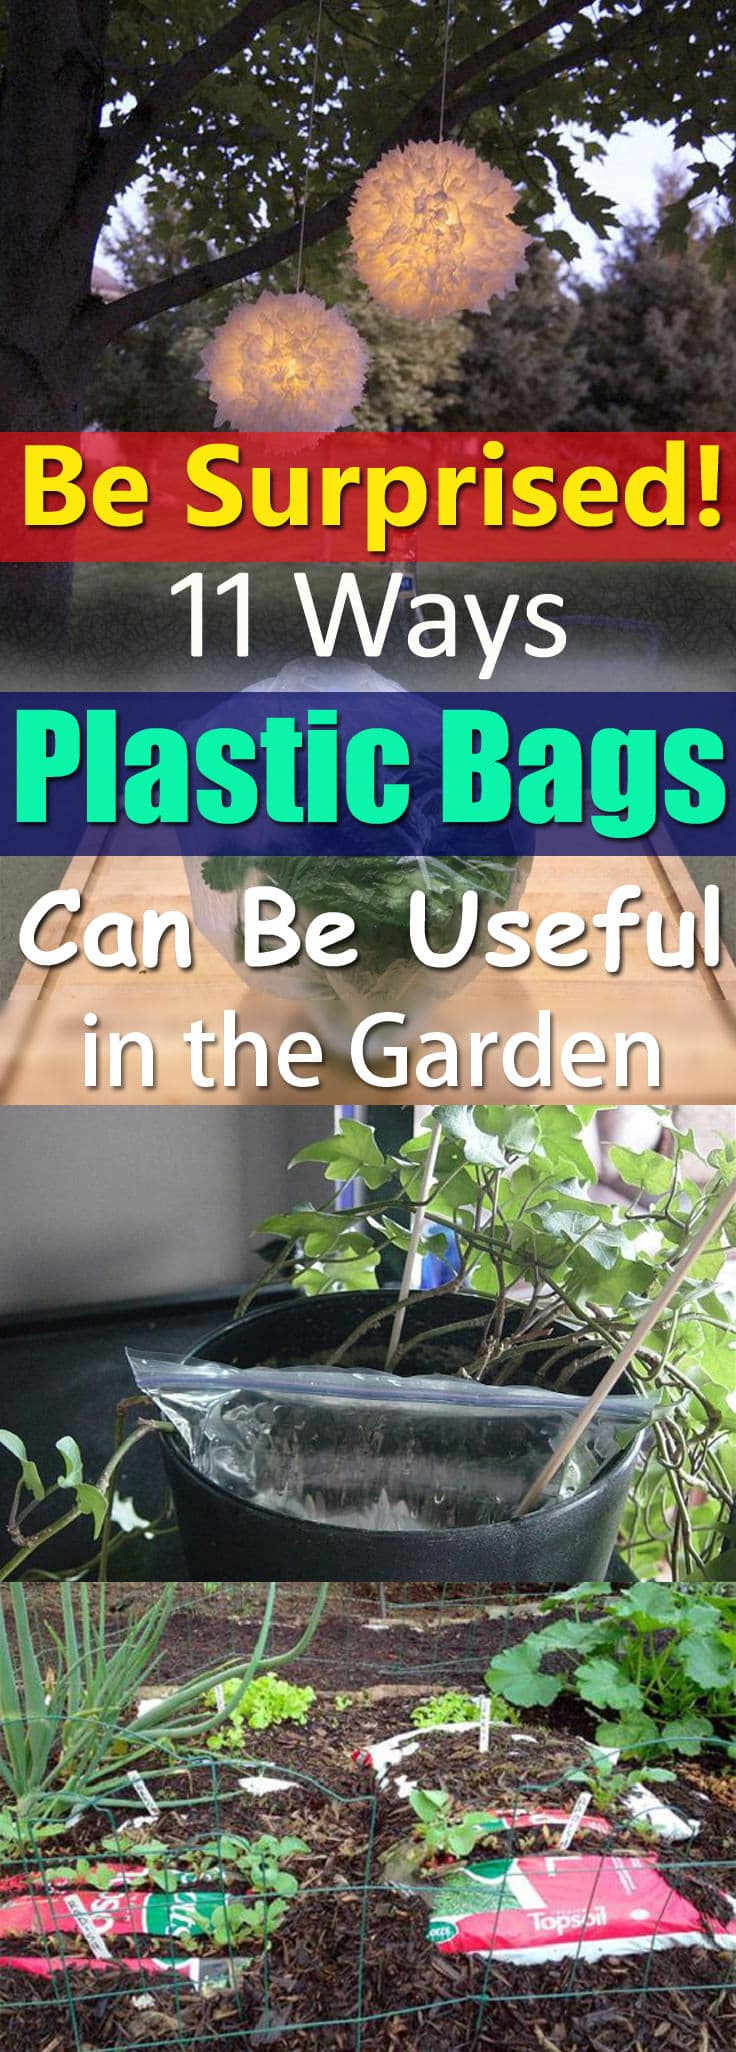 You don't believe but plastic bags can be so useful in the garden. Find out 11 DIY Ideas!